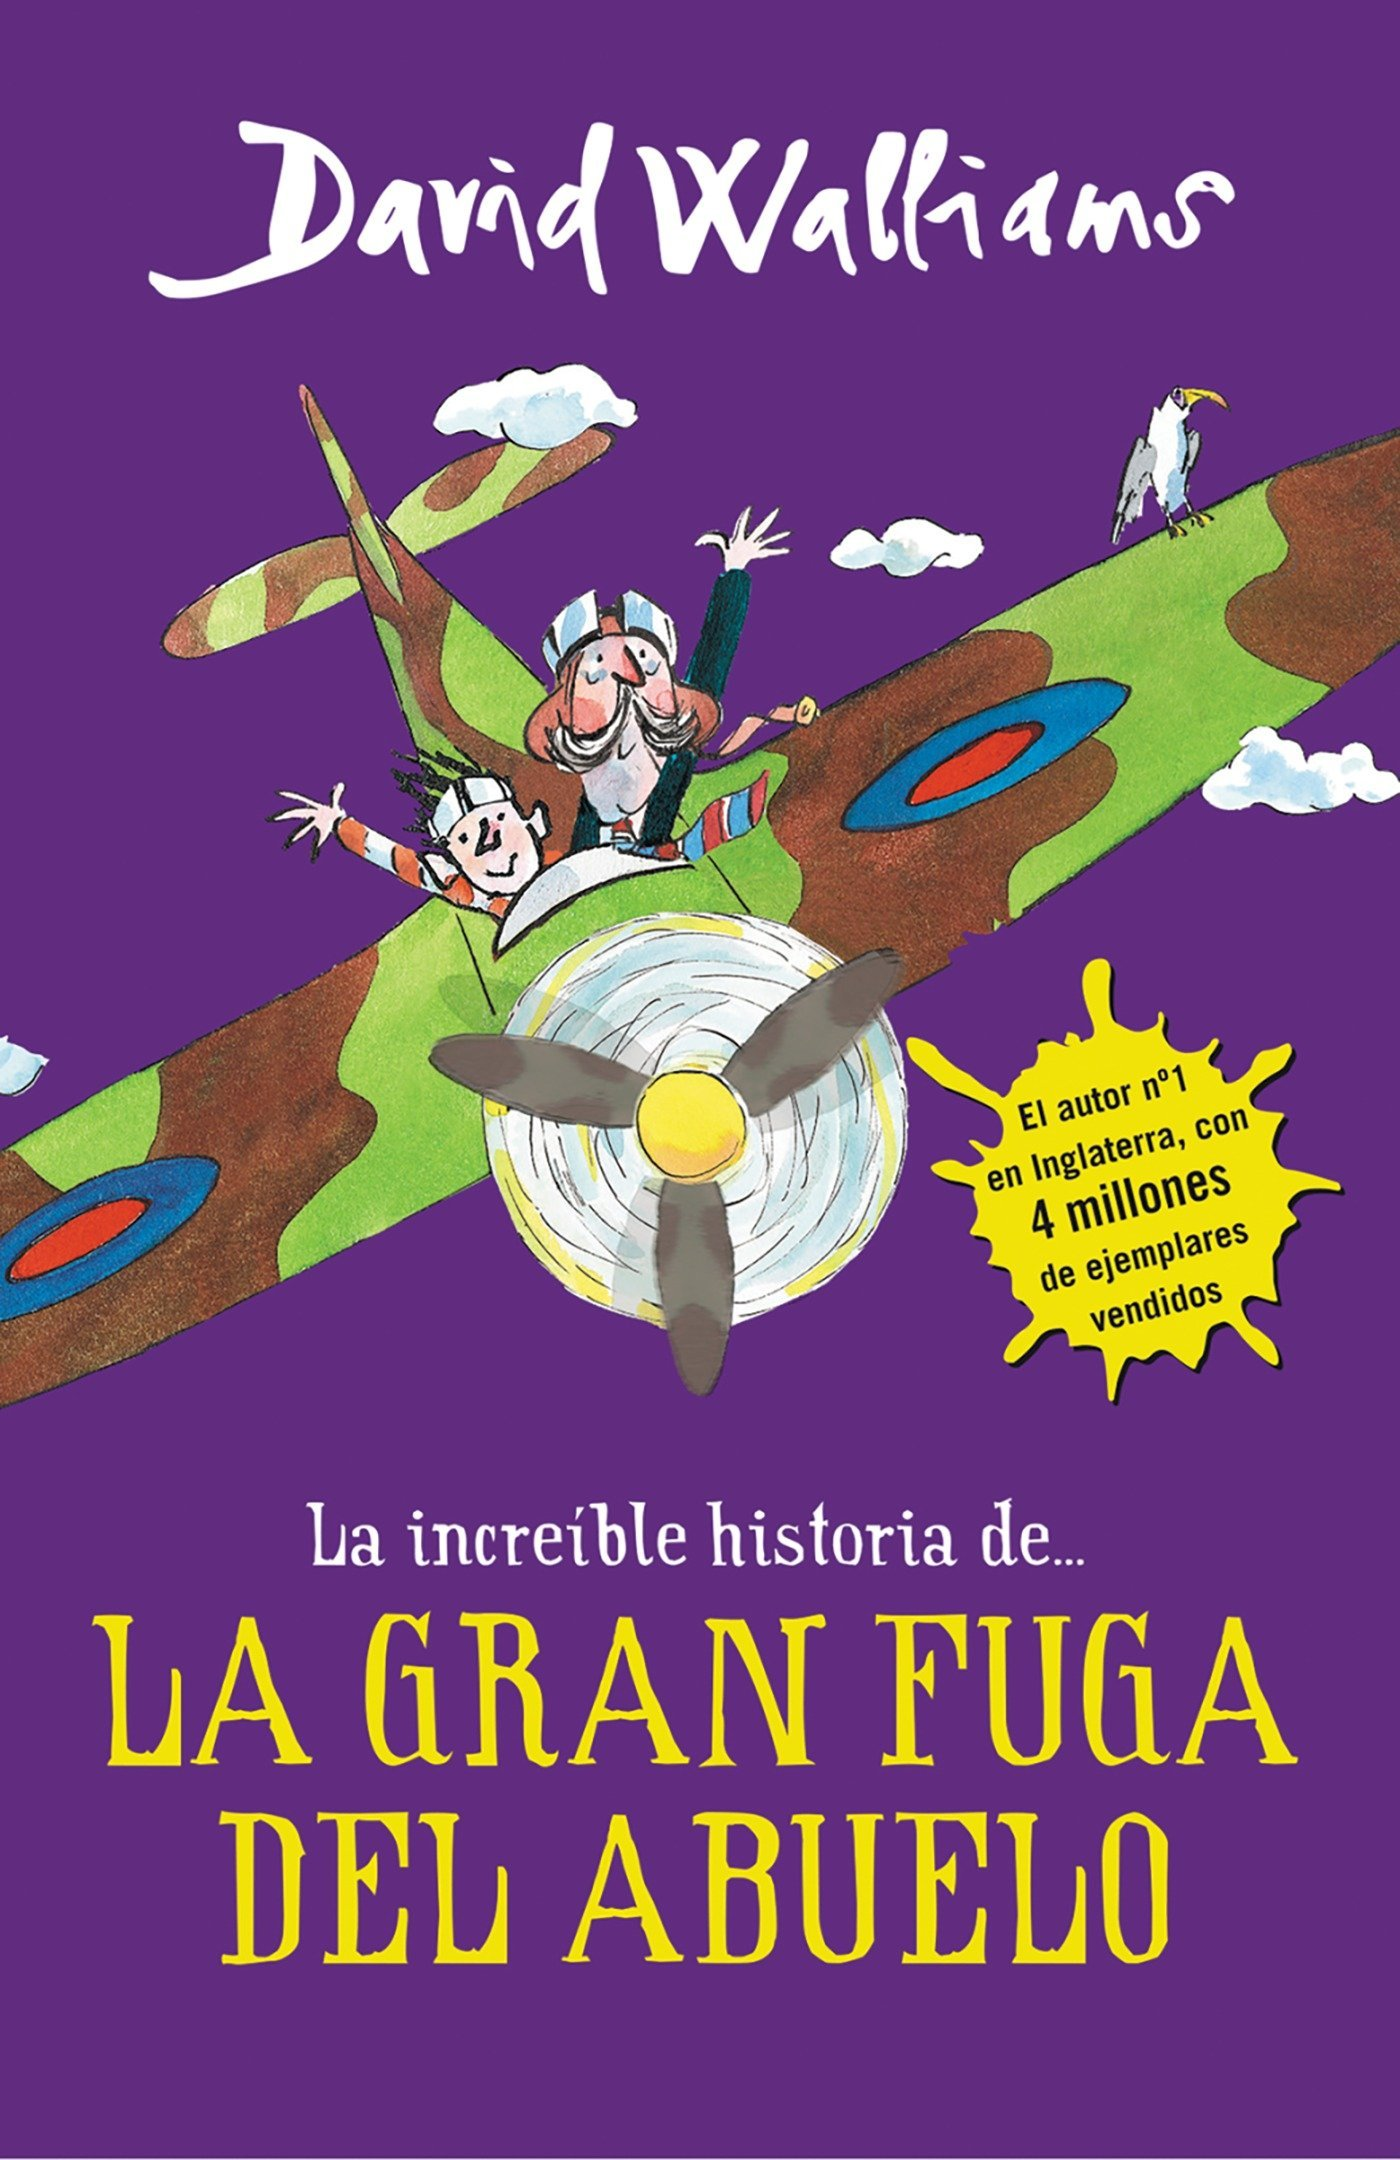 La íncreible historia de...La gran fuga / Grandpas Great Escape) (La increíble historia de...) (Spanish Edition): David Walliams: 9788490435779: ...